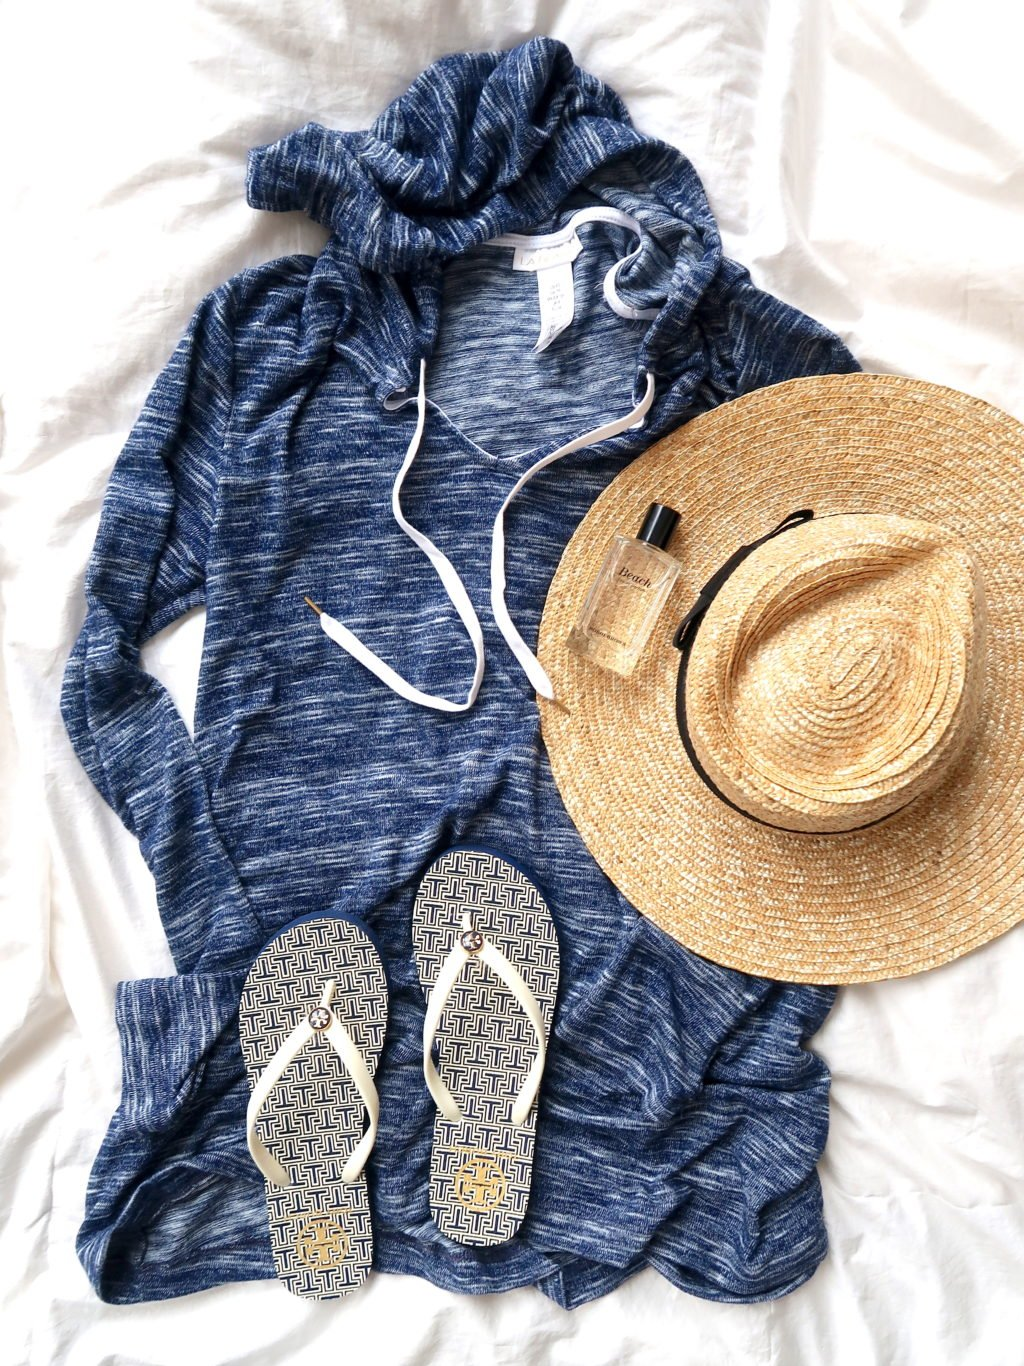 What's In My Suitcase: Beach Vacation, swimsuit cover up, flip flops, straw hat